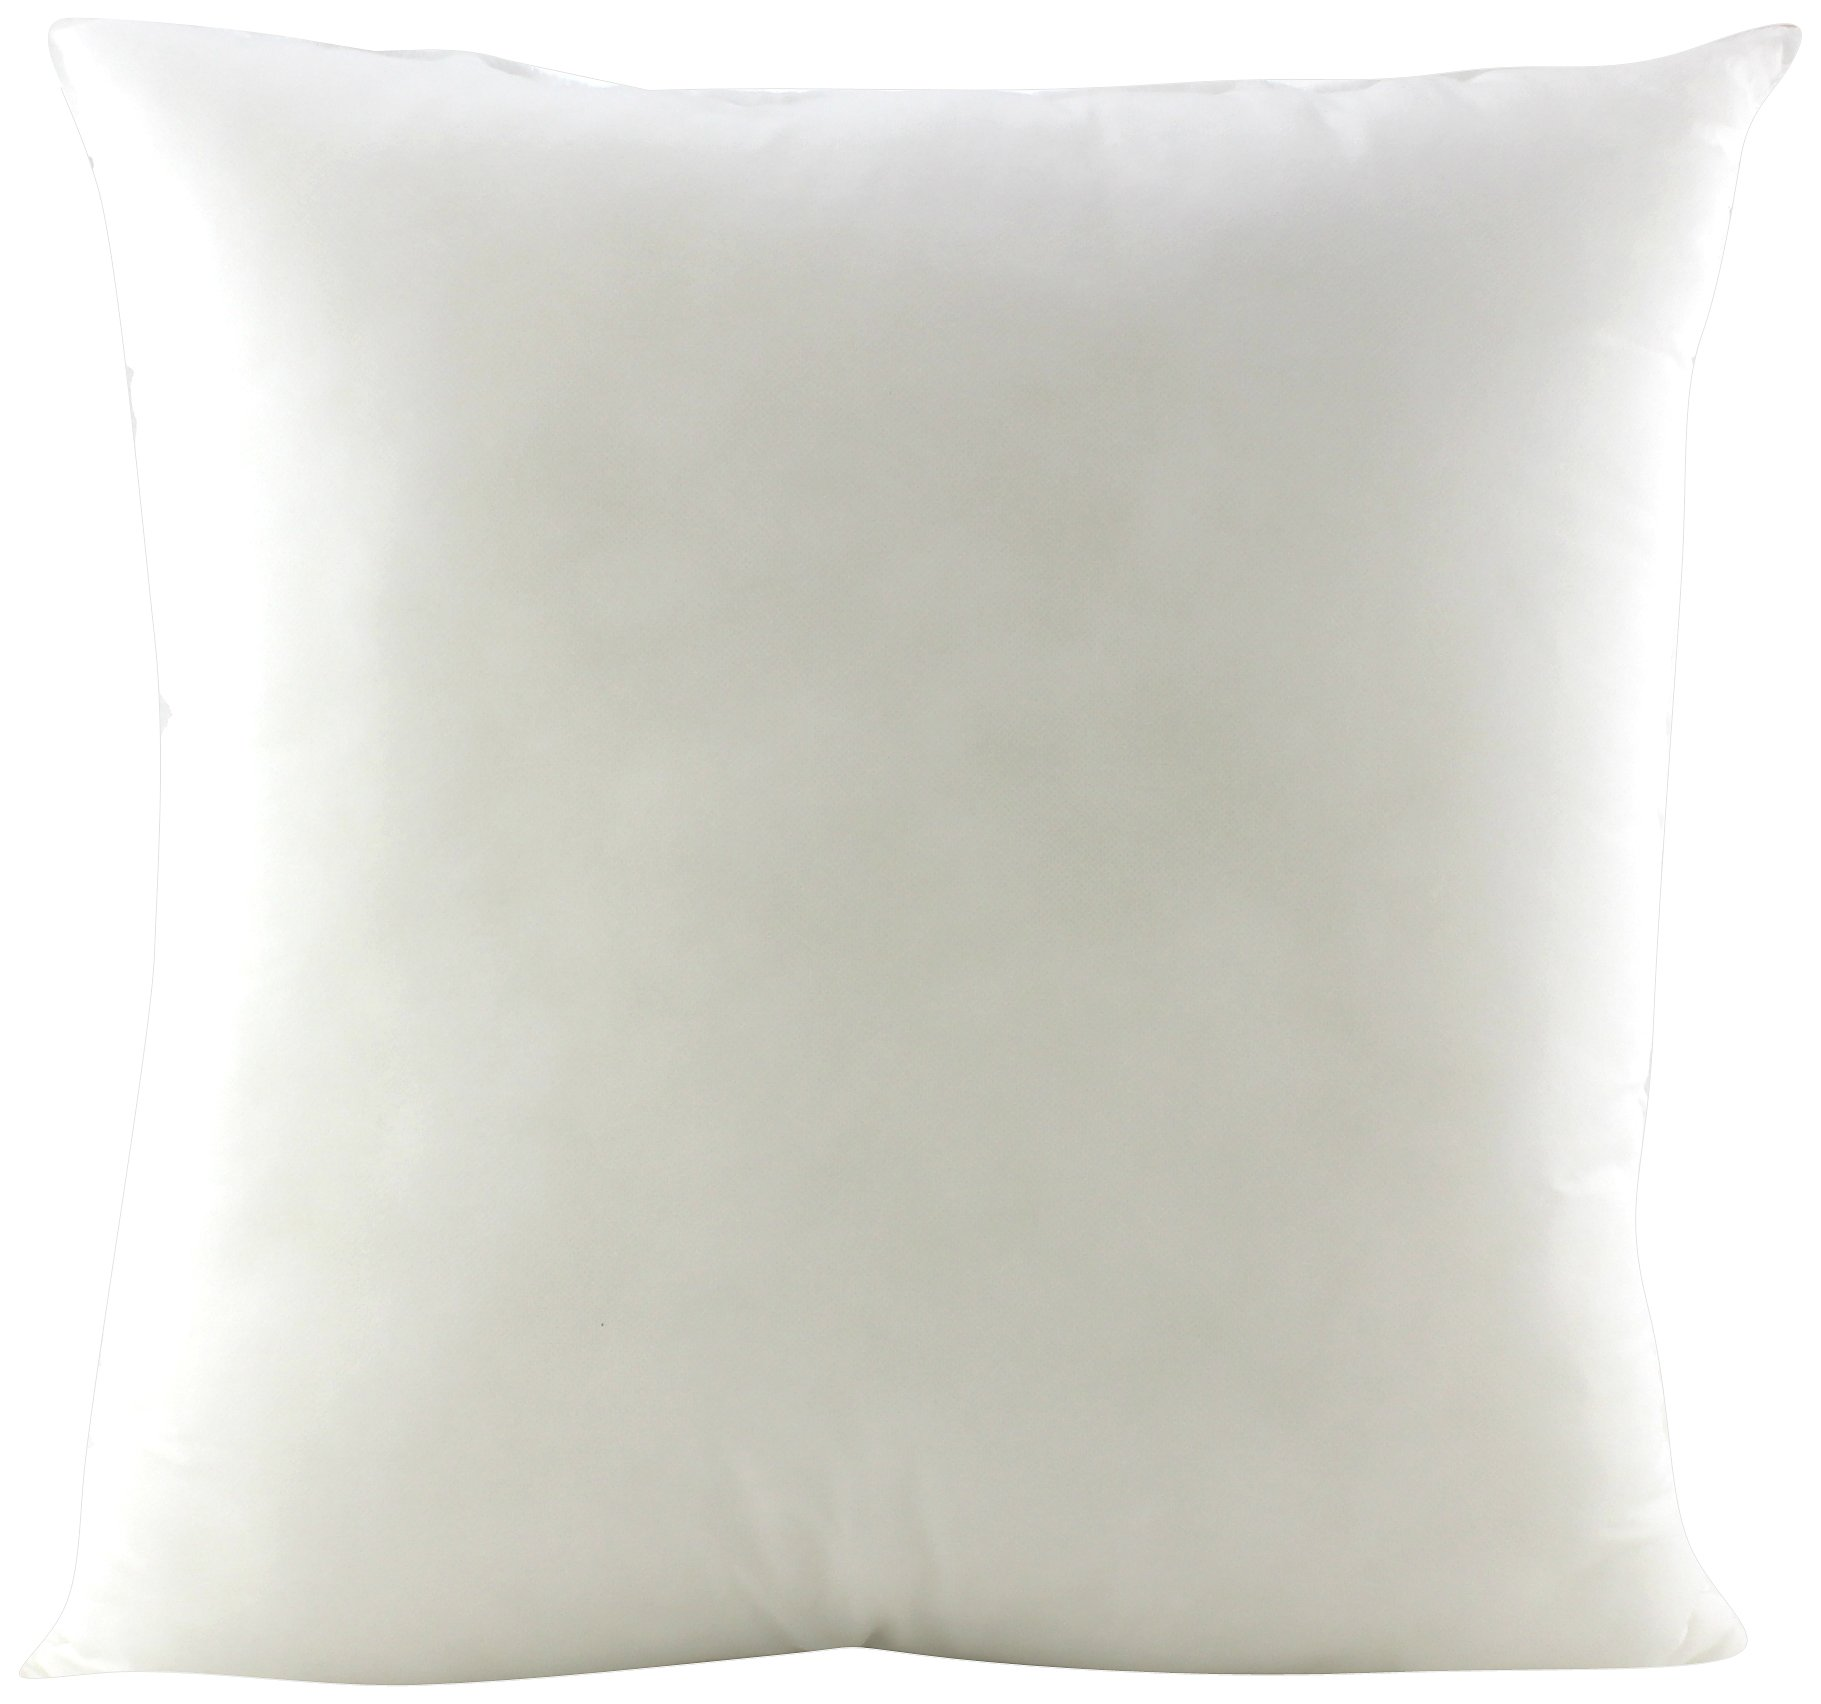 Pile of Pillows Insert Cushion, 18 by 18-Inch, 8-Pack by Pile of Pillows